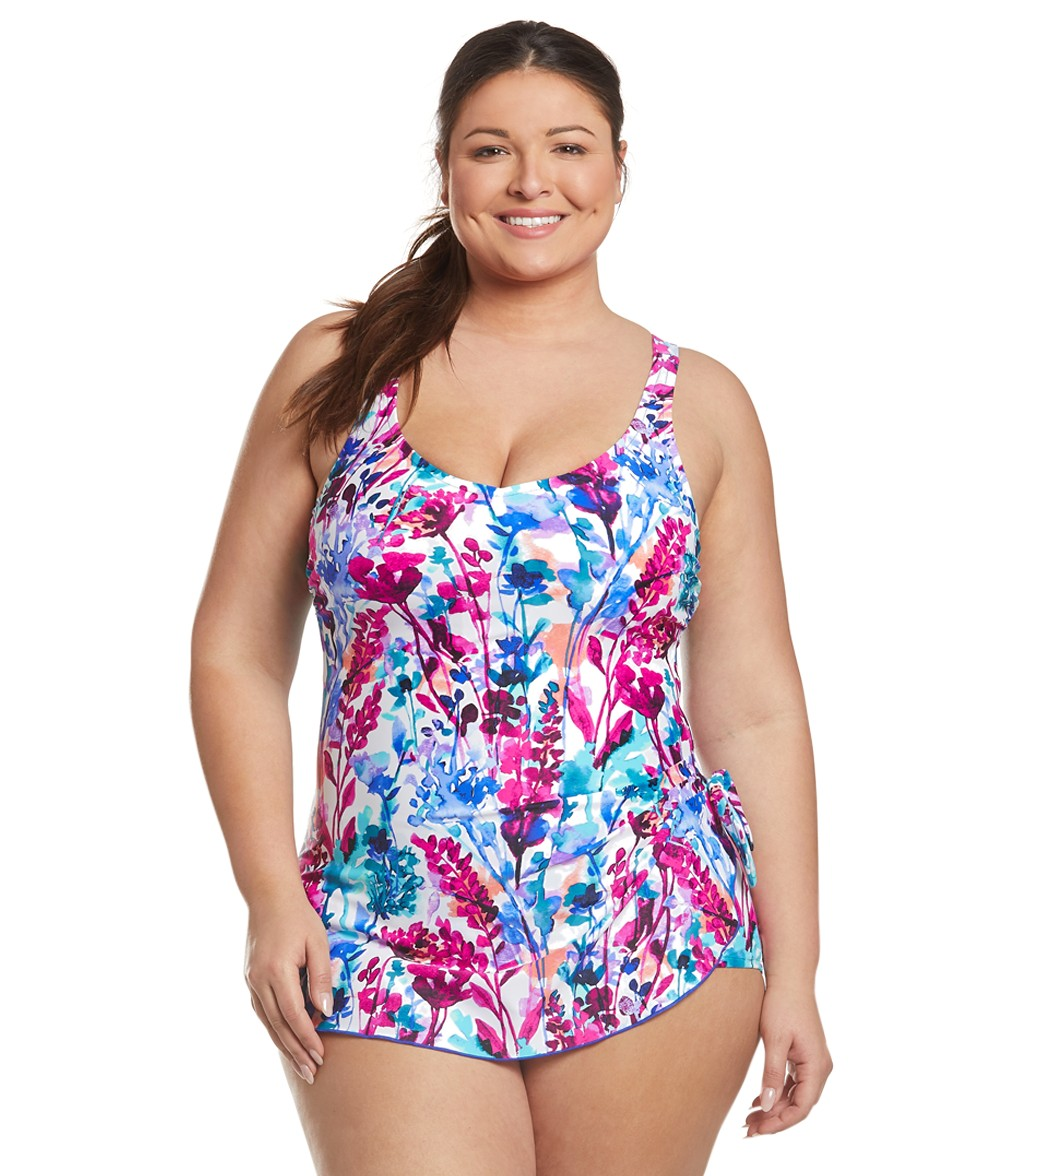 79263231b8 Maxine Plus Size Parisian Garden Sarong One Piece Swimsuit at  SwimOutlet.com - Free Shipping